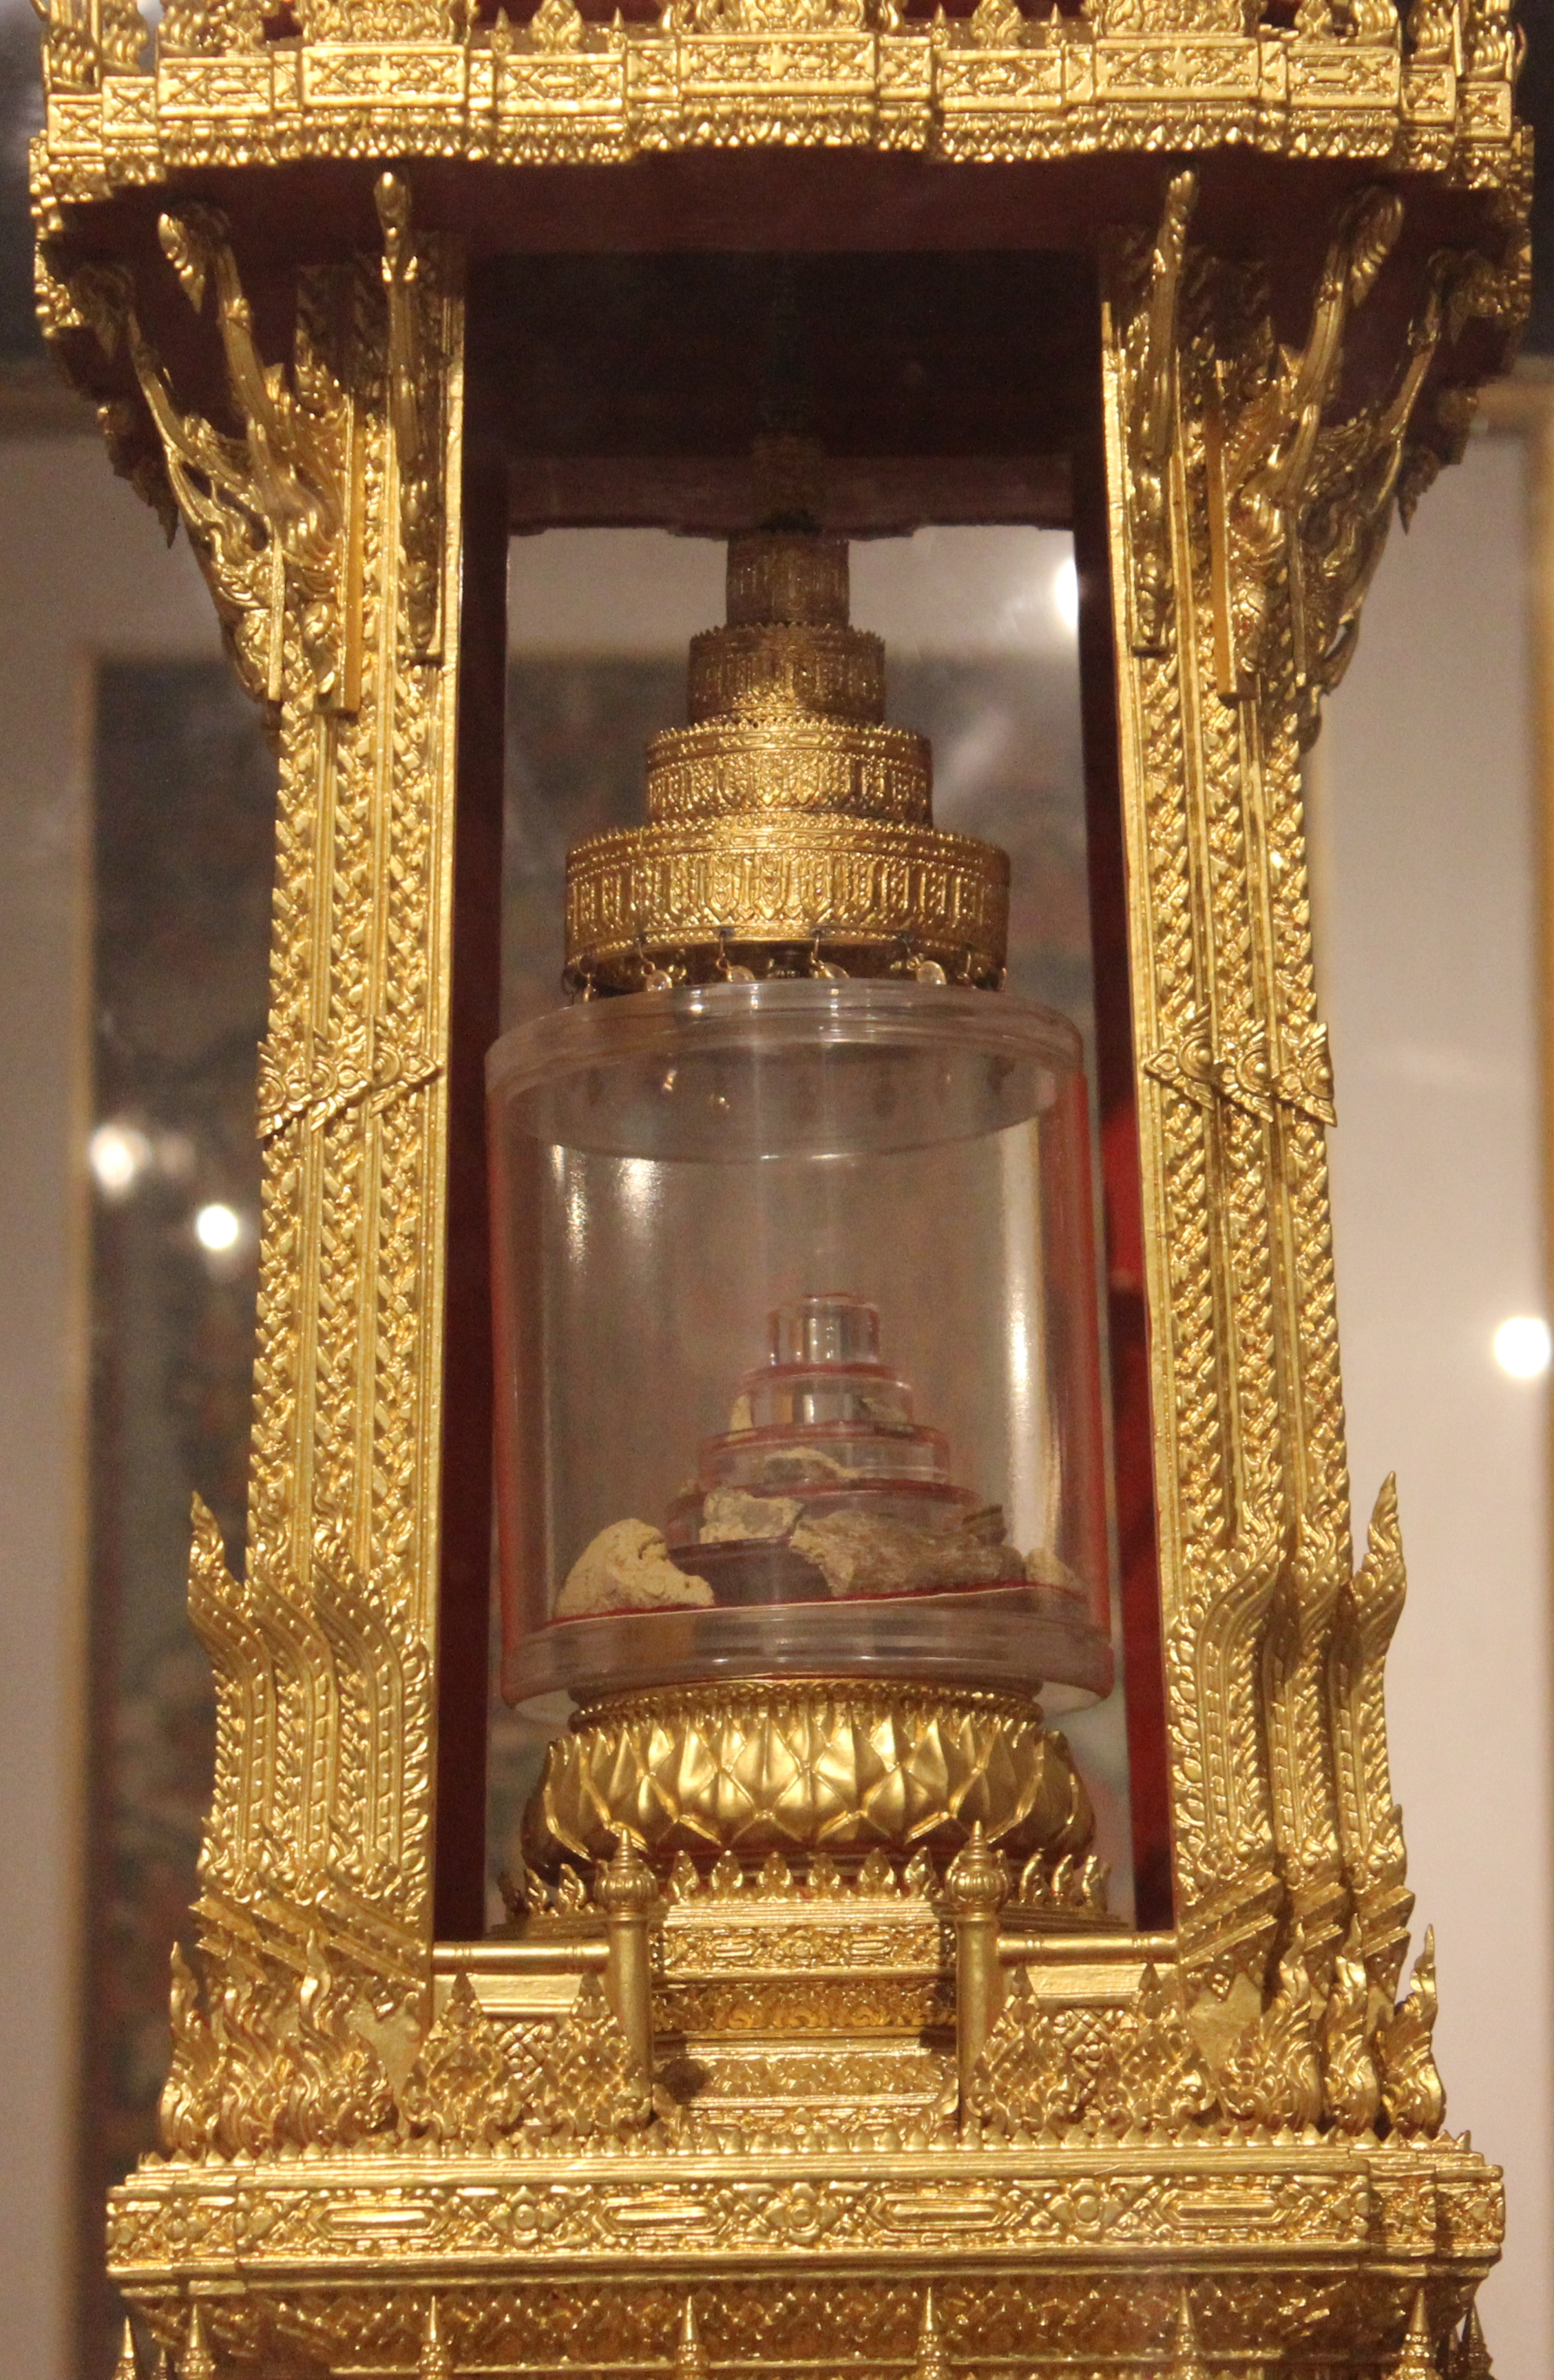 Relics of Lord Buddha